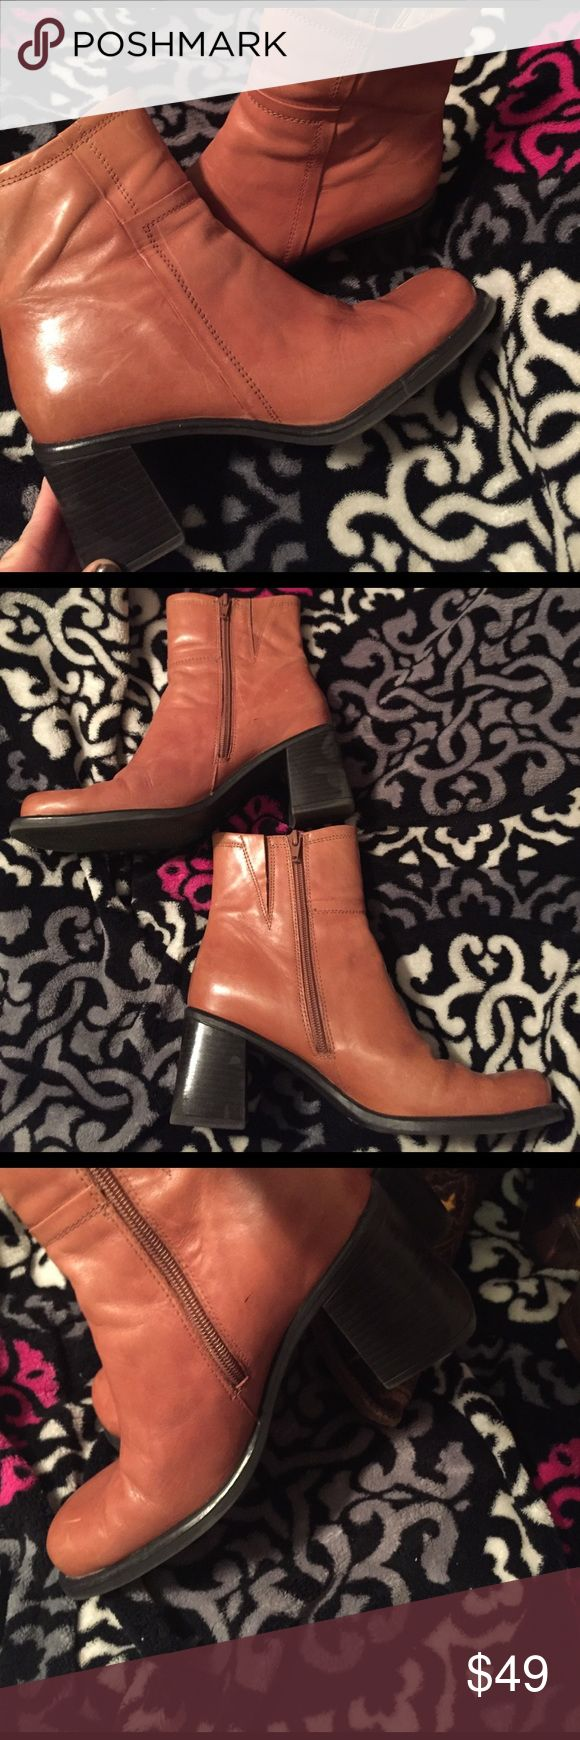 Women's Bass Brown Leather ankle boots 8.5 NICE Women's ankle boots by Bass. All leather , light tan brown in color , square toe , chunky heel so very comfy. Very pretty and soft leather , has zip closure on inner side. Please contact me for more info! 5-% of sales goes to the Wounded Warrier Program to support our troops 👏🏼❤️ Bass Shoes Ankle Boots & Booties